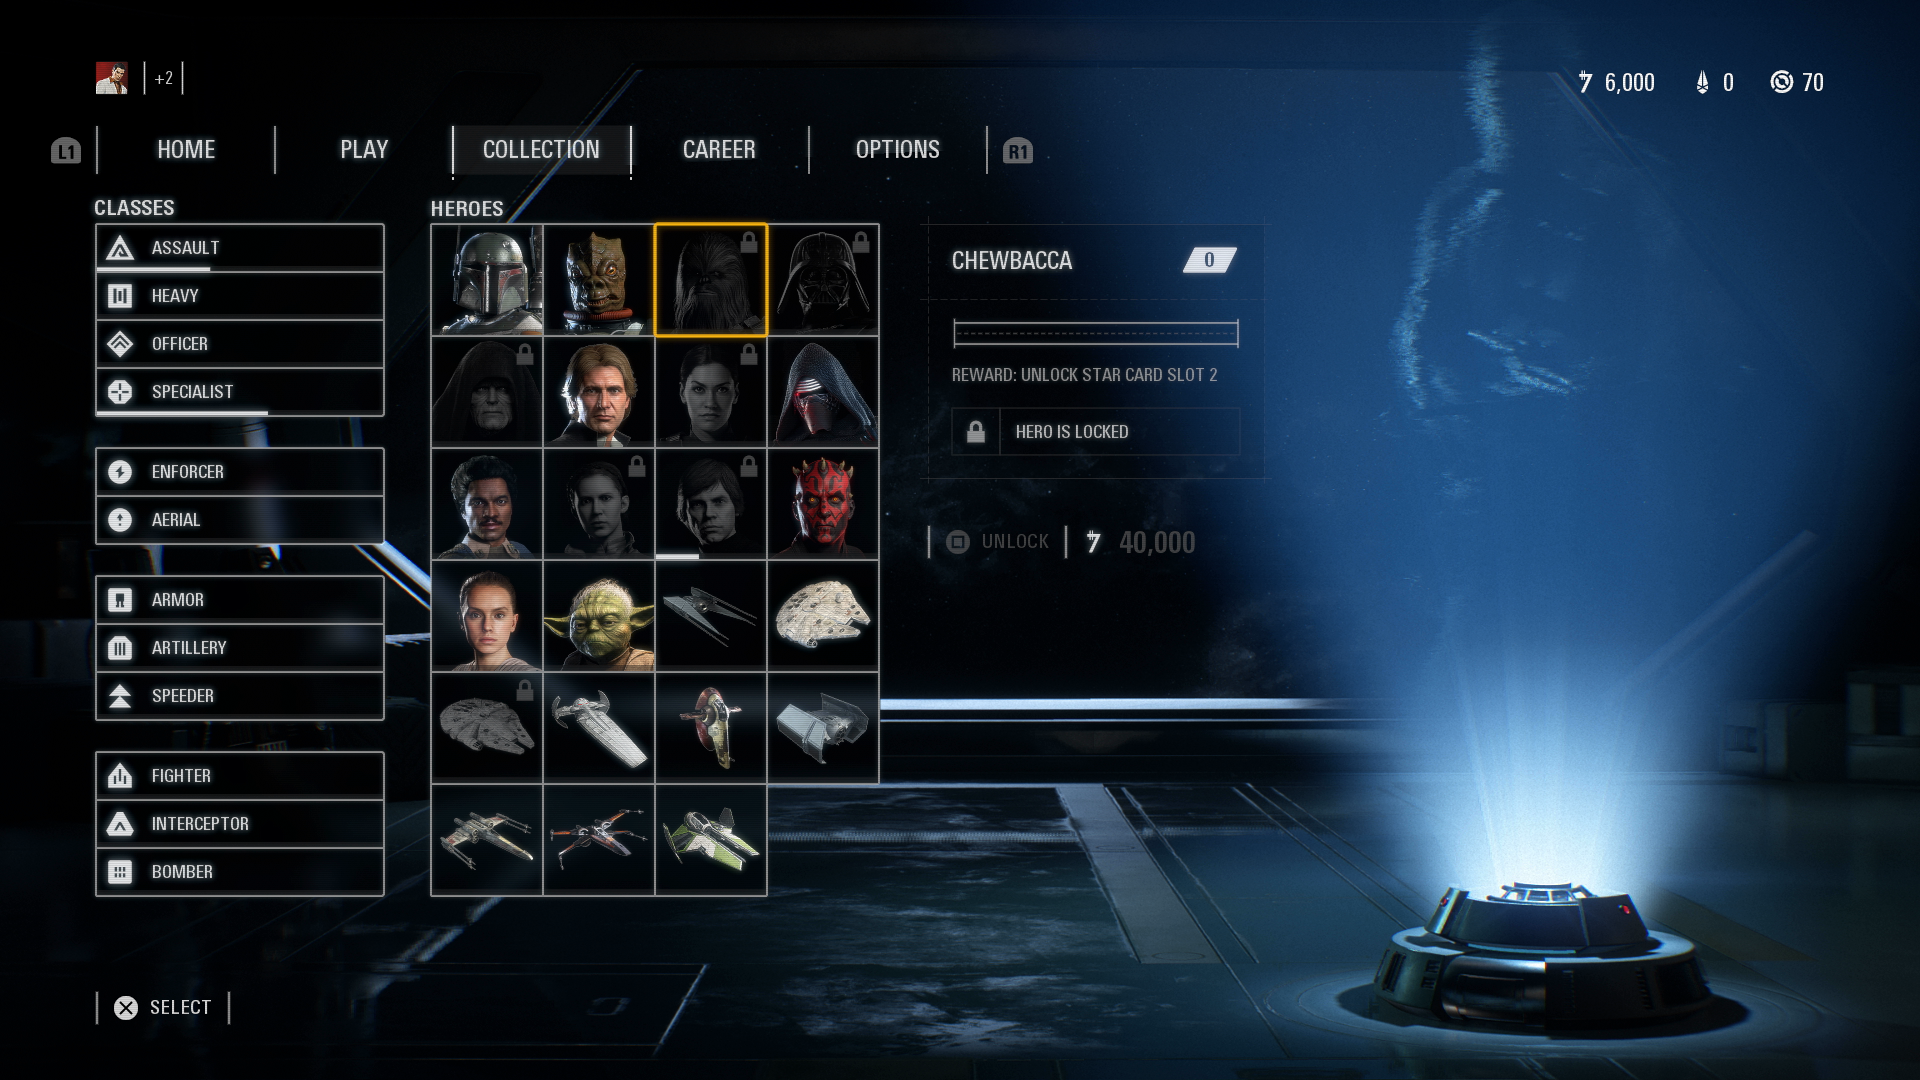 star wars battlefront 2 heroes guide